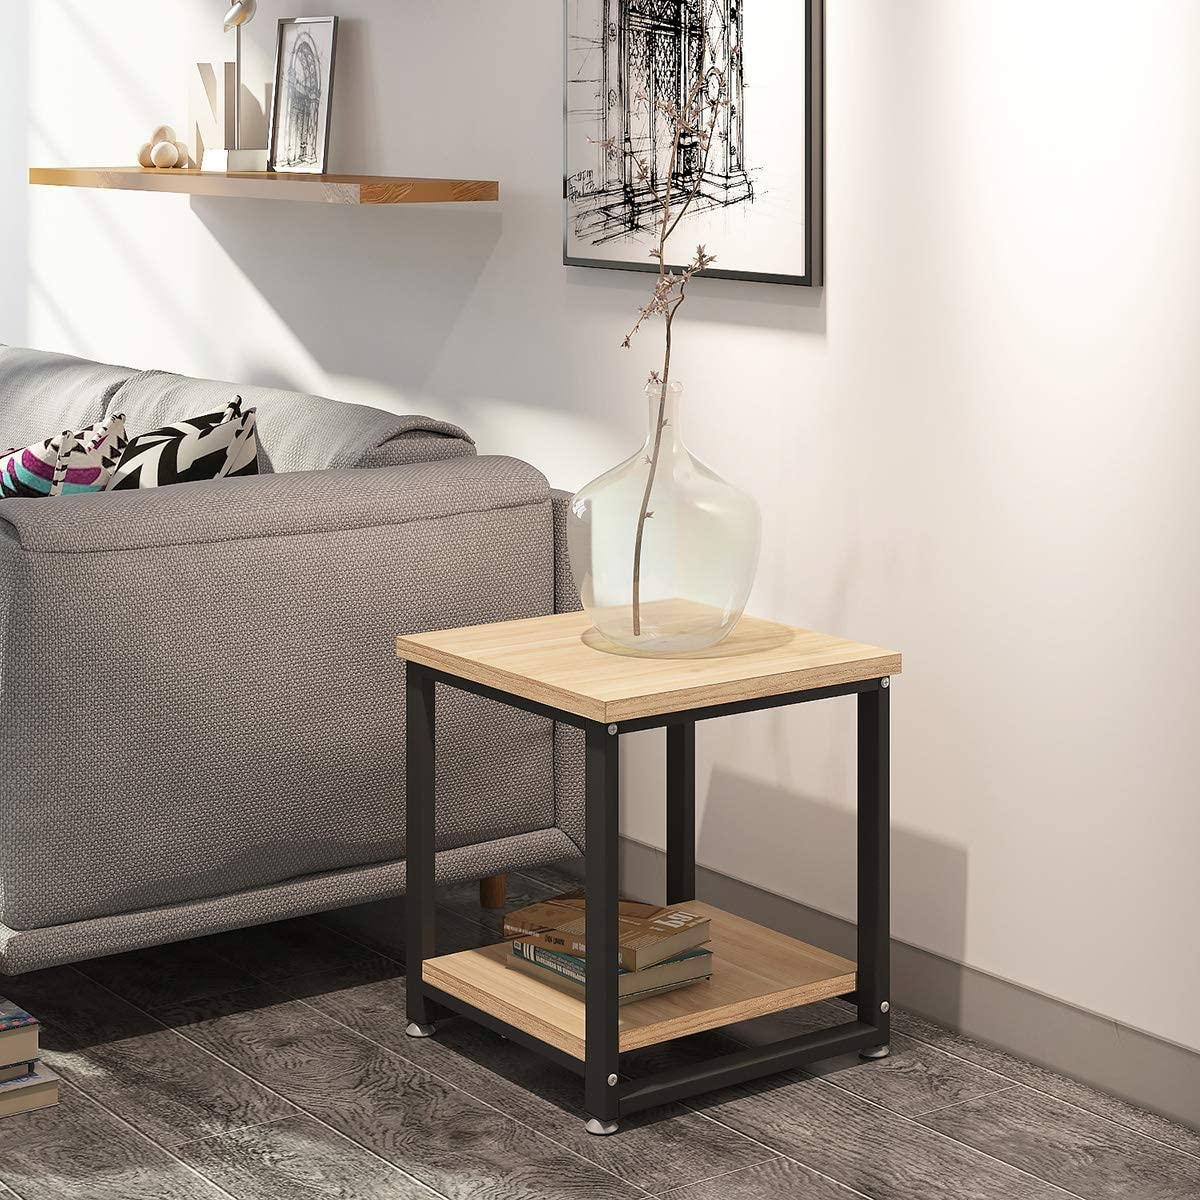 Nightstands,End Table 17.7 Inch,Side Table 0.98 Inch Thicker Accent Table with 185 lbs Weight Capacity,Square Side Table with an Additional Lower Shelf Fits in Small Spaces Living Room Bedroom